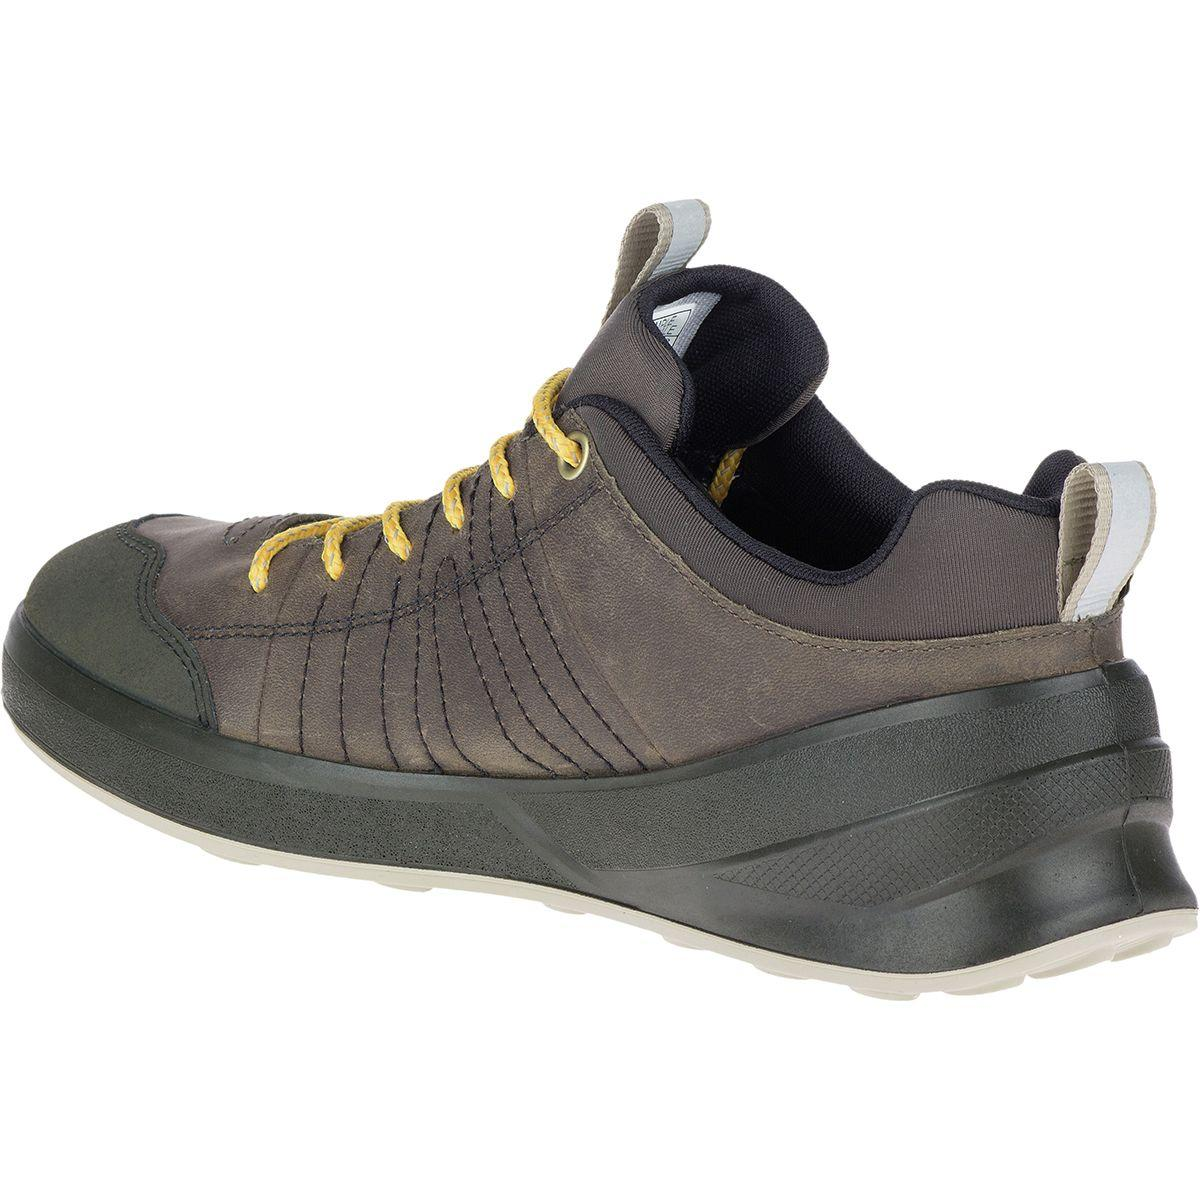 Merrell Leather Ascent Ride Gtx Shoe